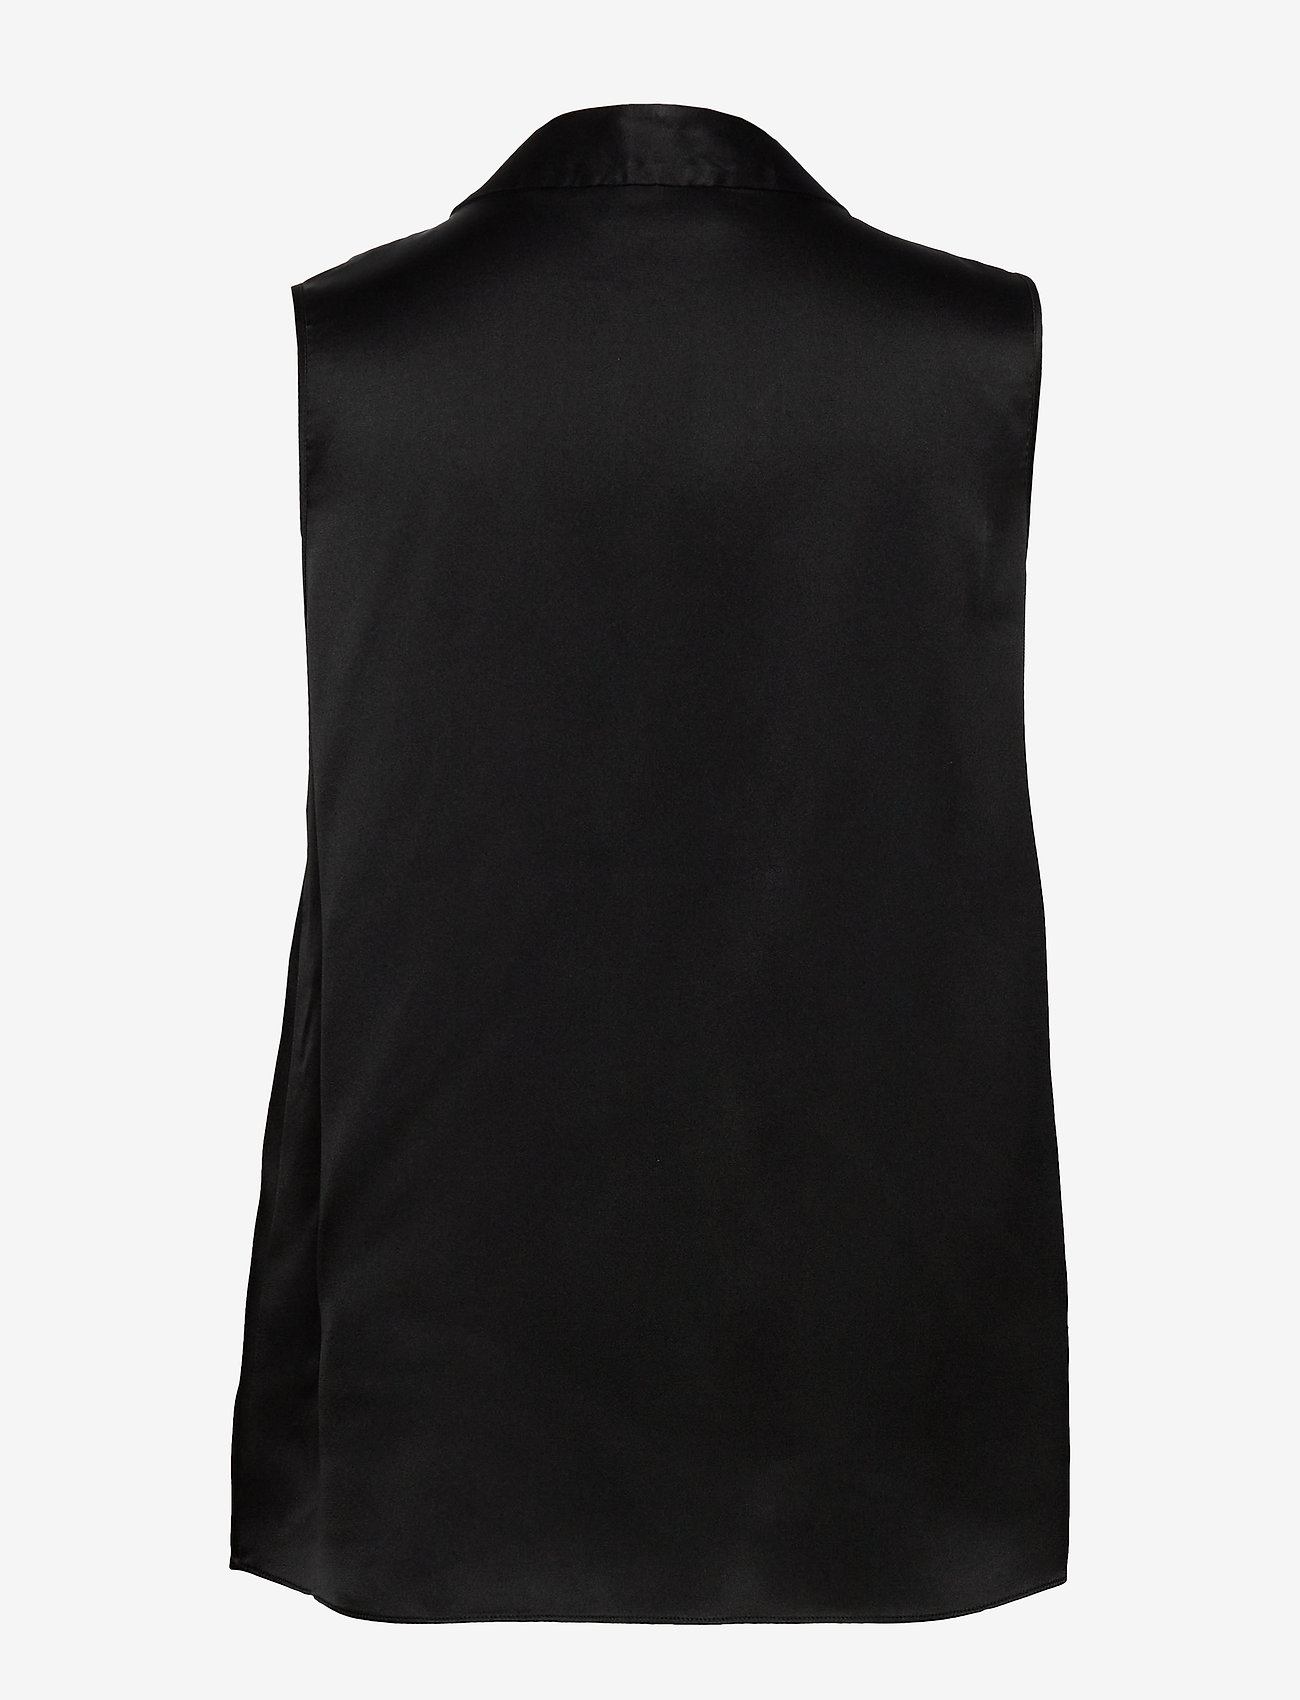 SAND - Double Silk - Prosi Top - blouses sans manches - black - 1